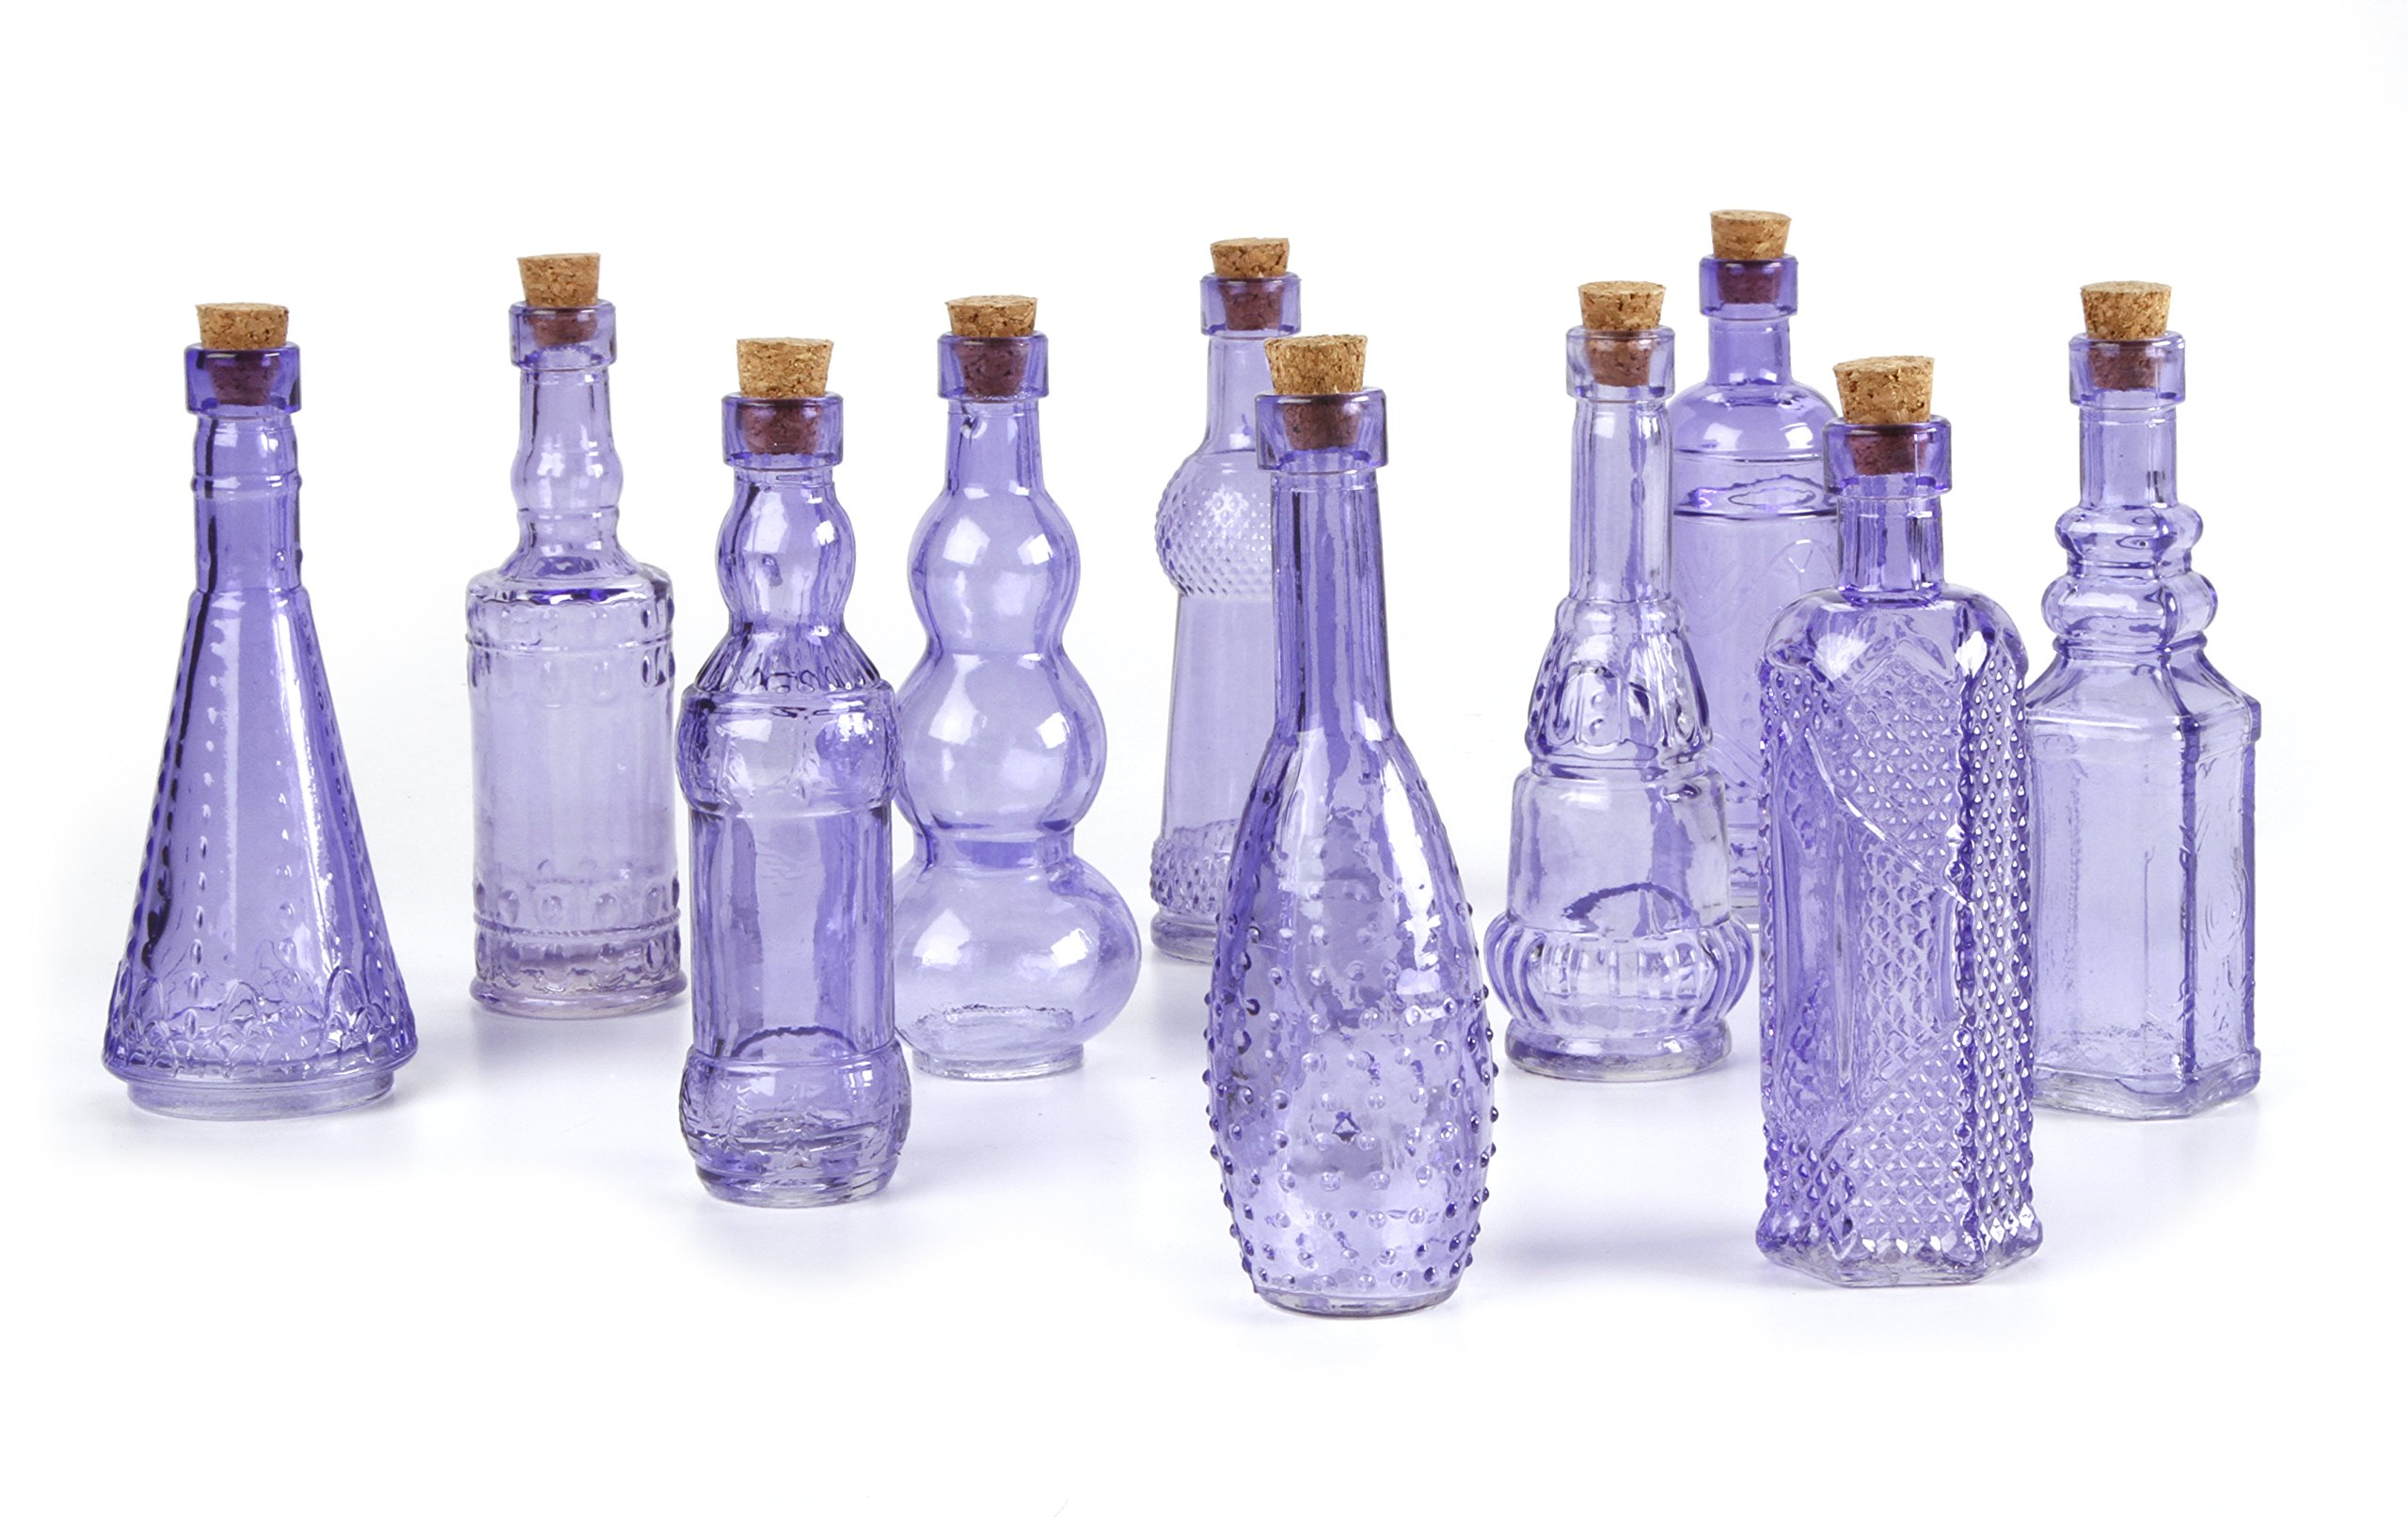 Darice 20140PURPLE Glass Bottles with Cork 5 INCHES 70 Assorted, Multicolor